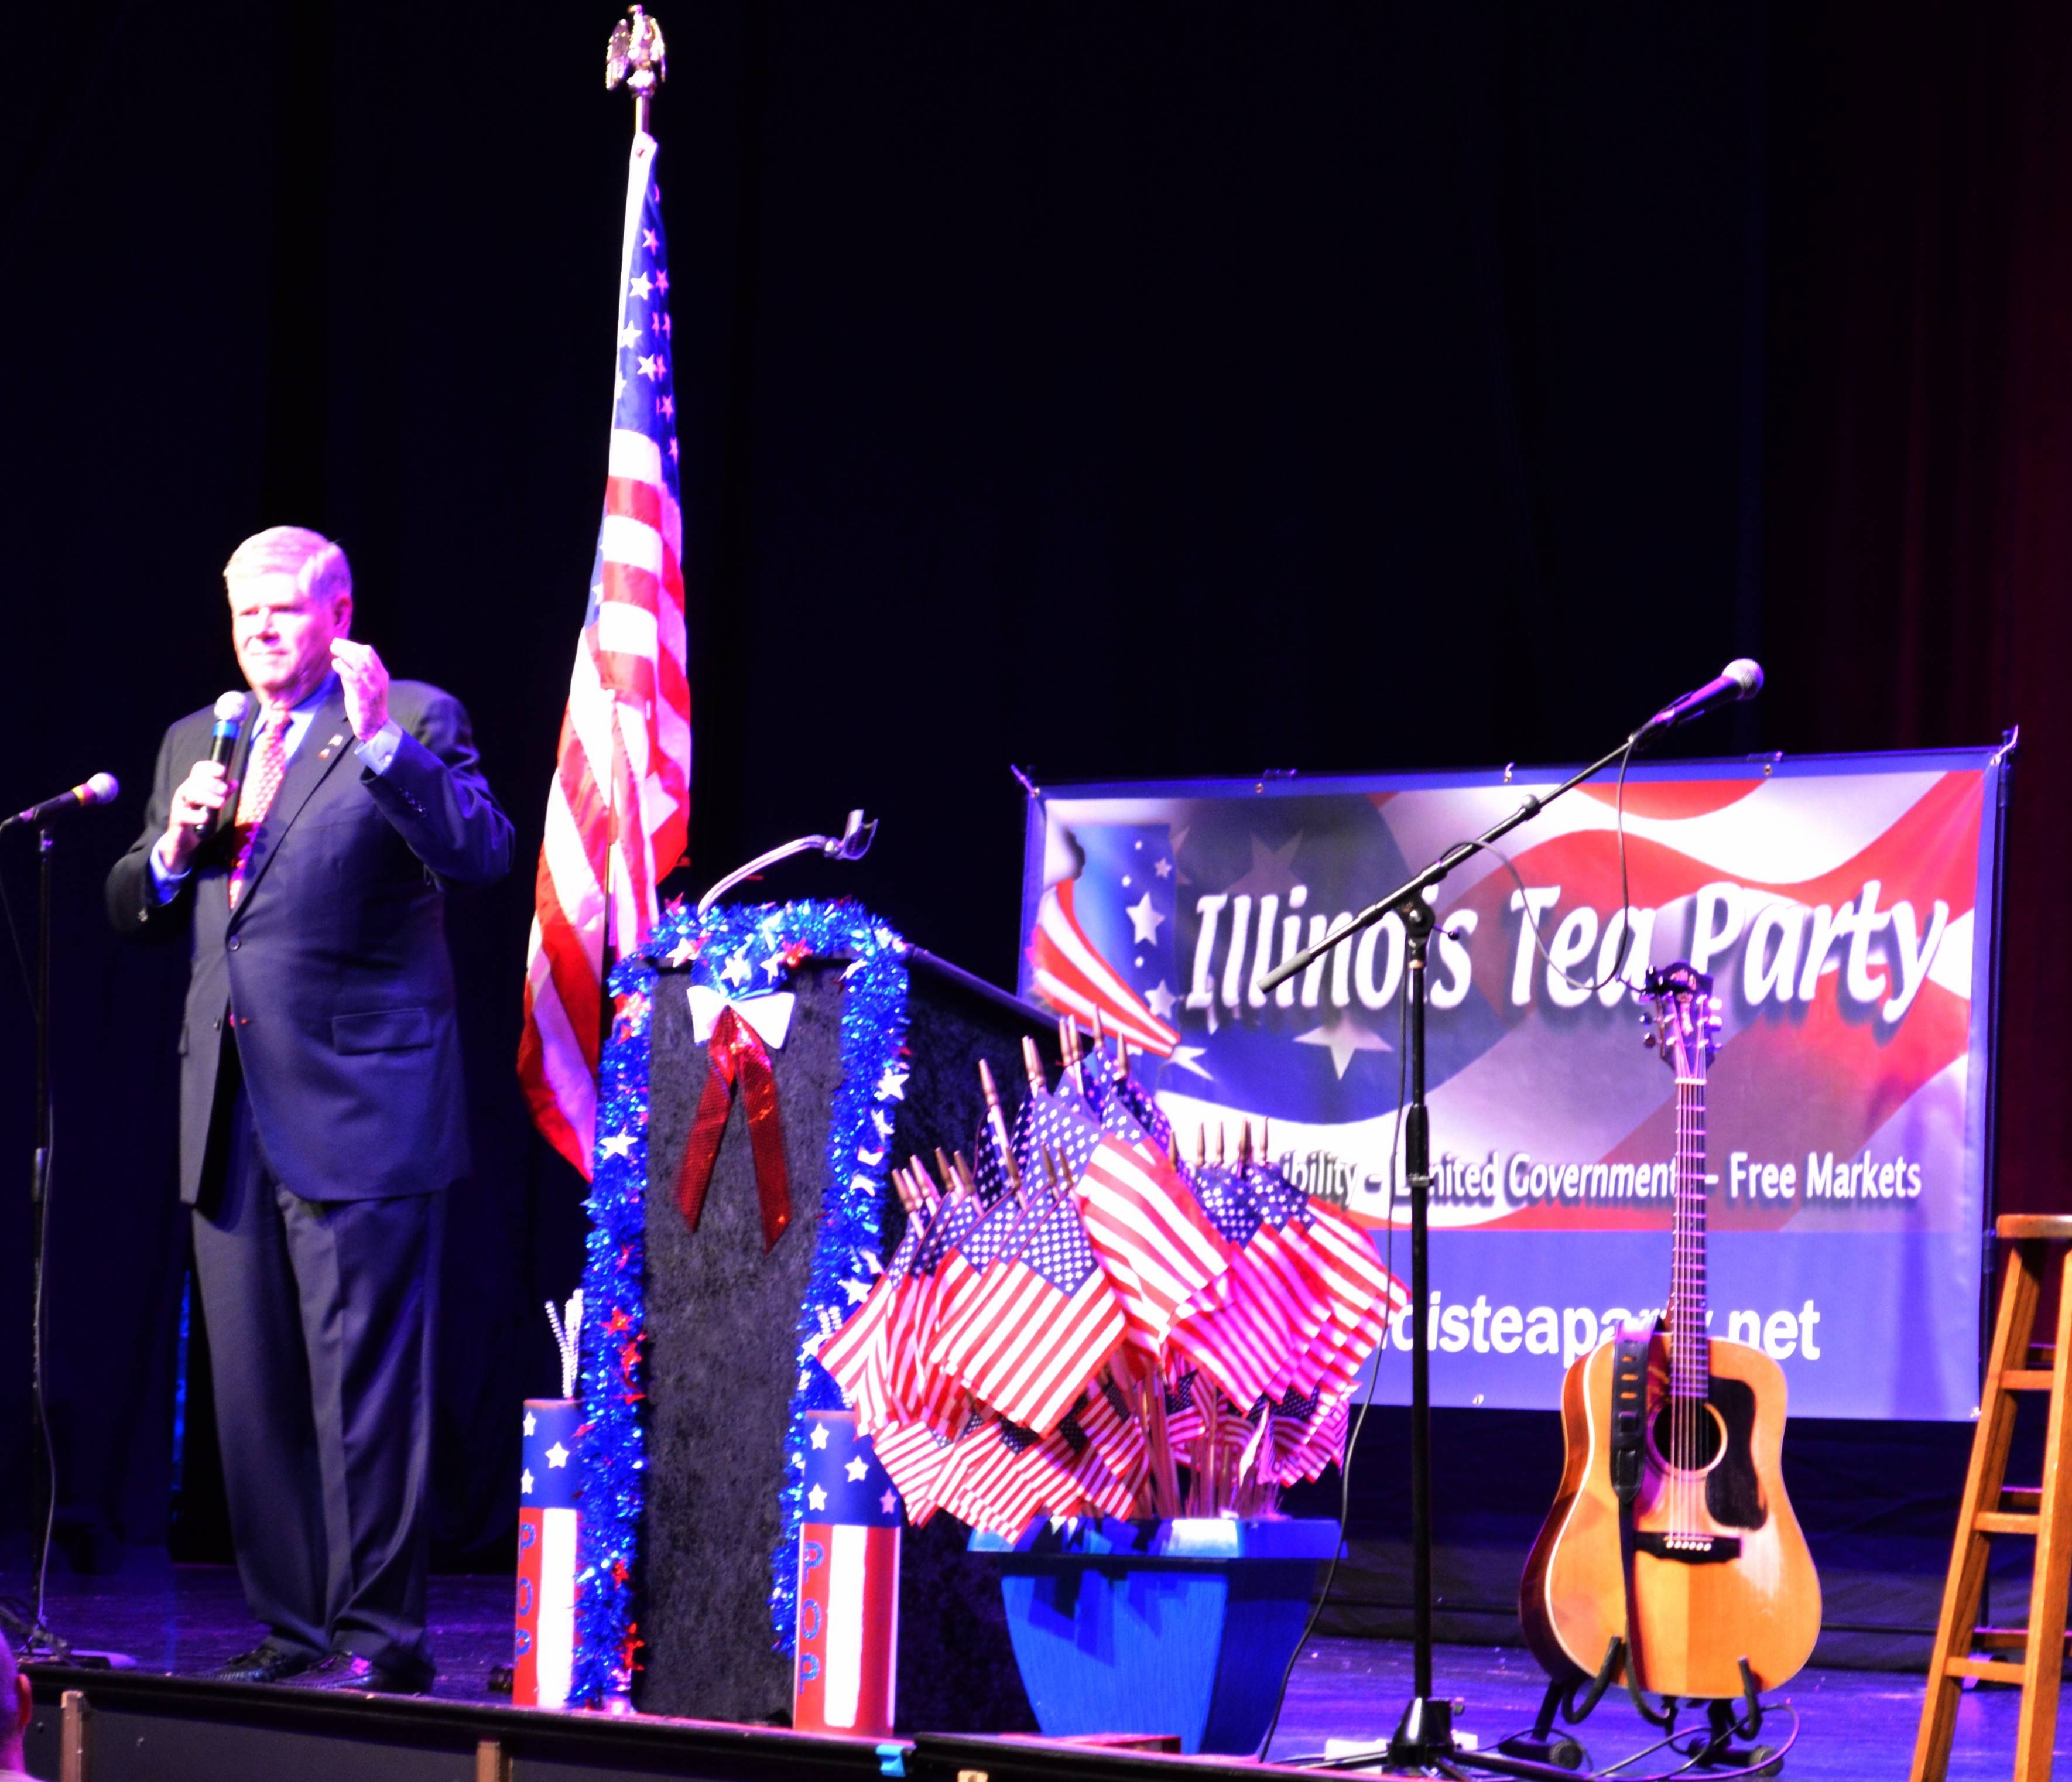 State Sen. Jim Oberweis rallied local Tea Party members to both take over the Illinois Republican Party and support him in his contest against Sen. Dick Durbin Tuesday night in St. Charles.